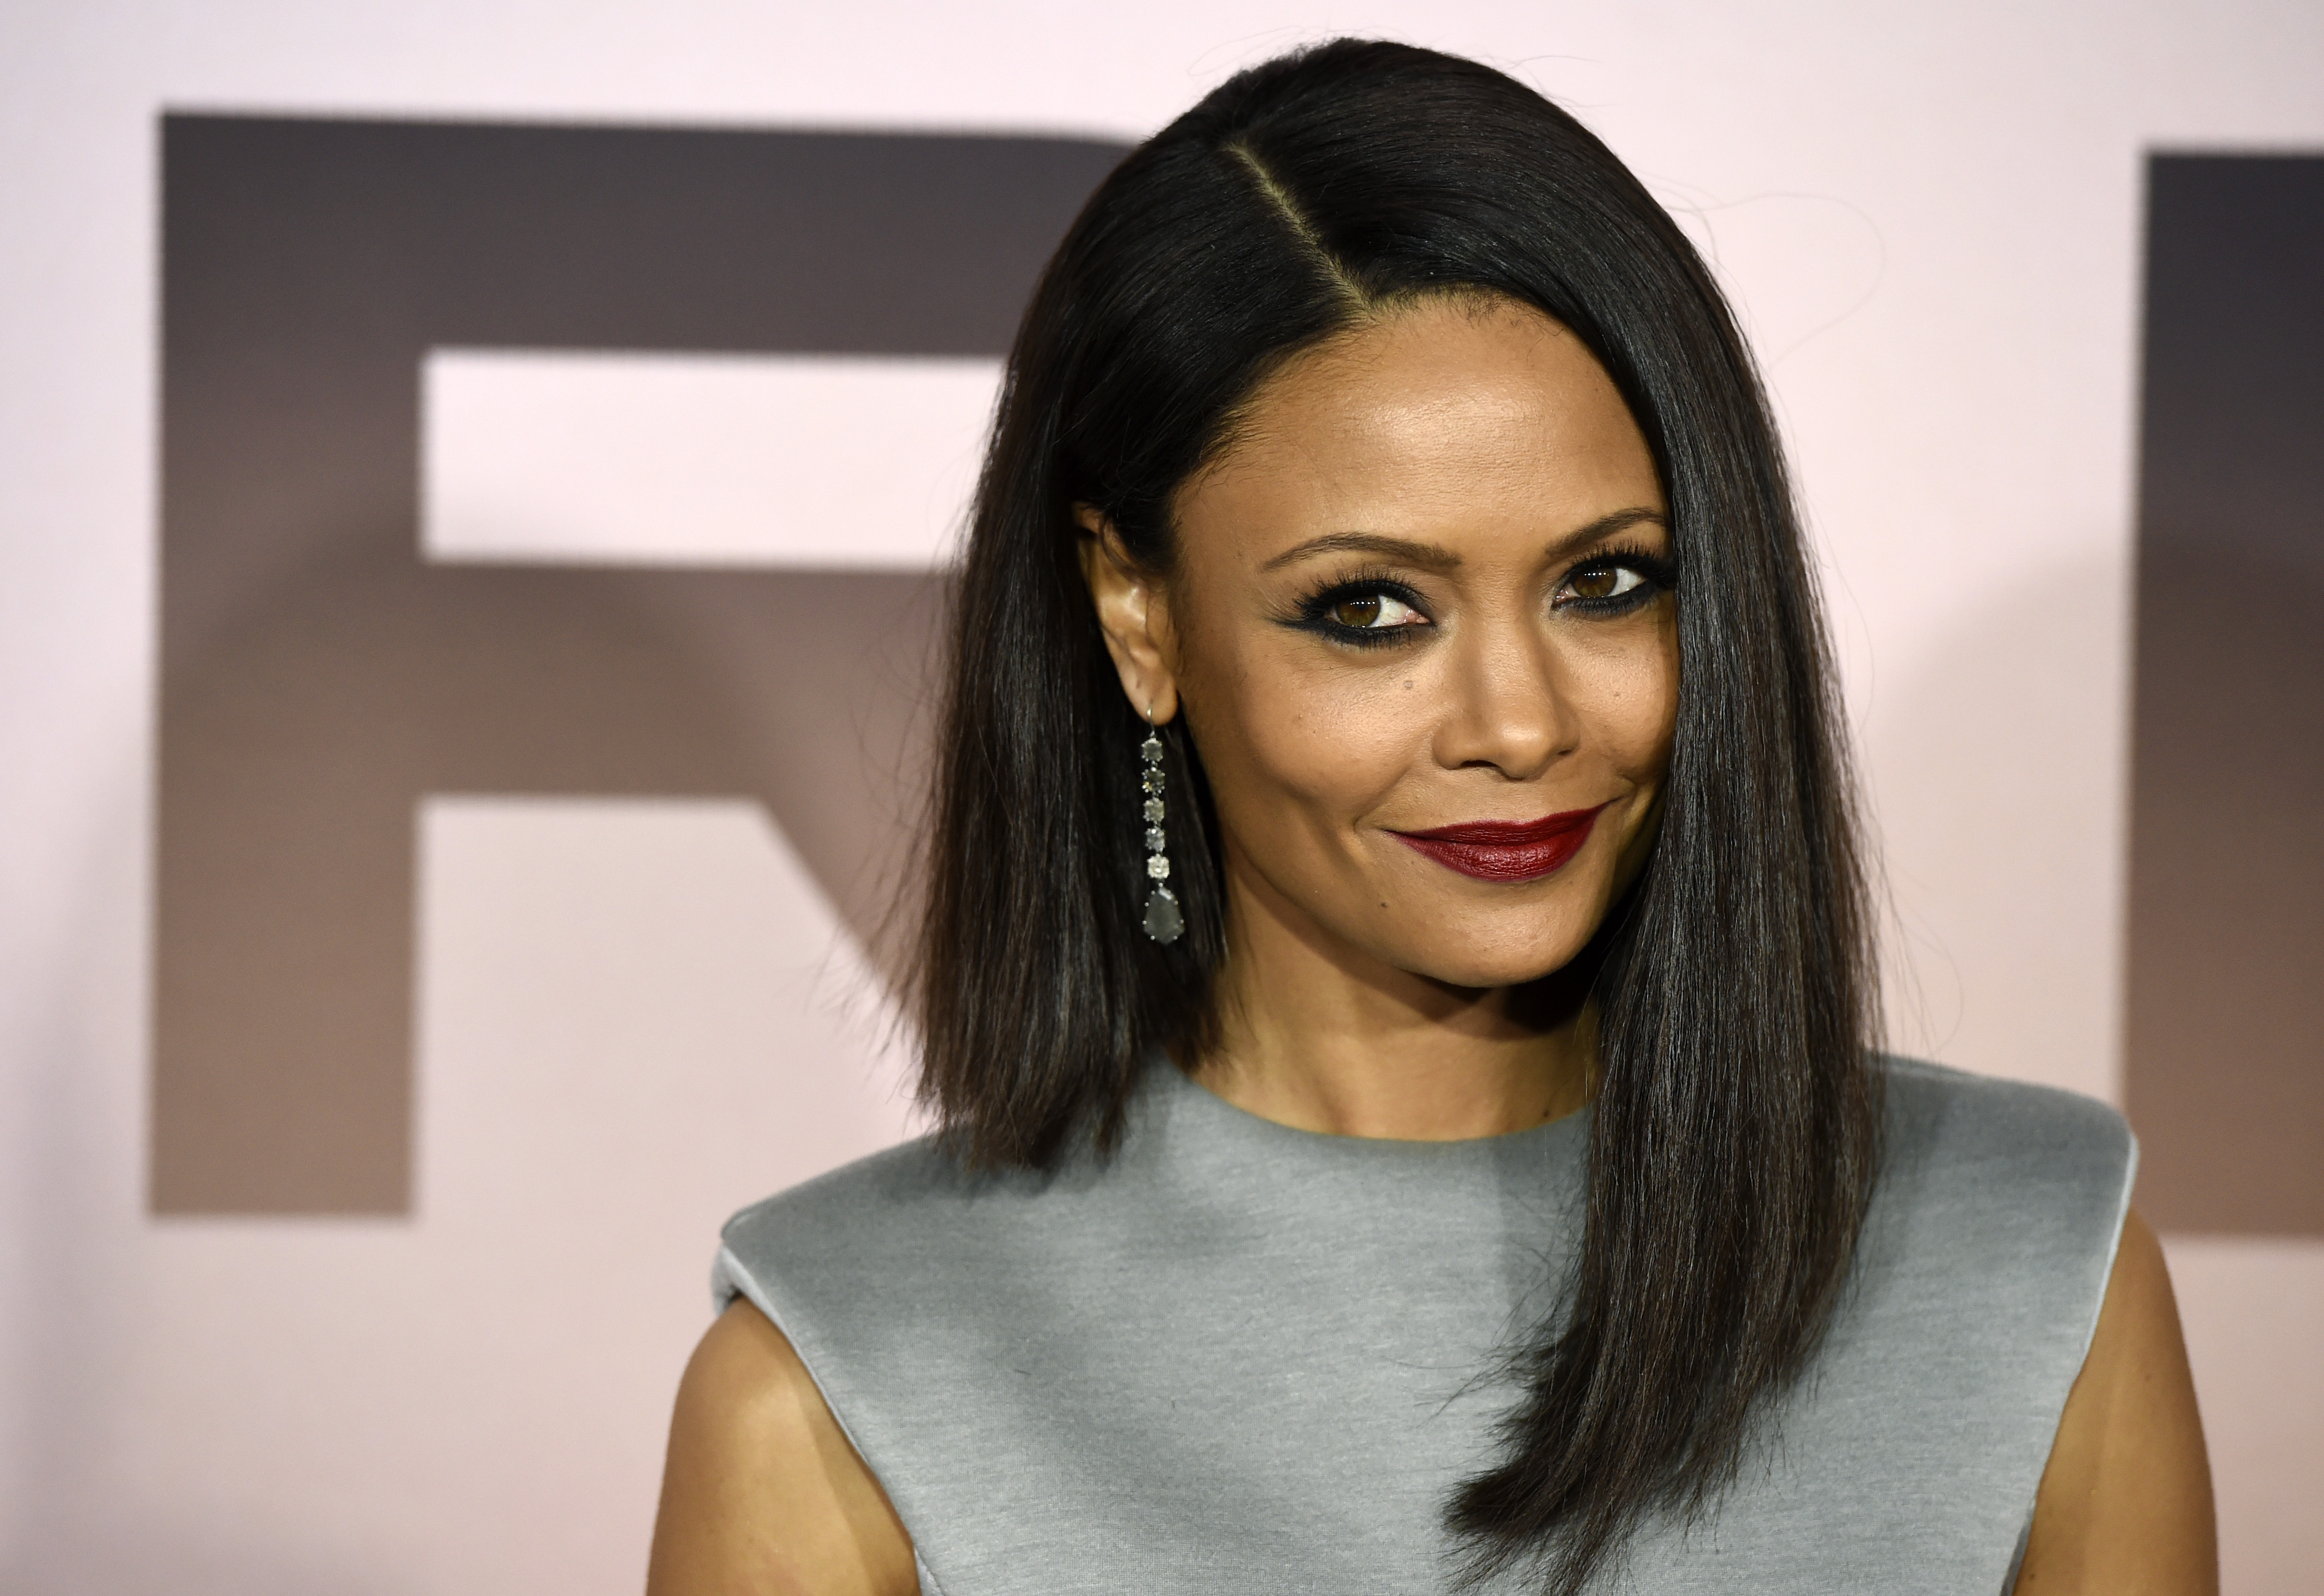 Hbo entertainment in association with kilter films, bad robot and warner bros. Why Thandie Newton Criticized Tom Cruise I Have Nothing To Lose Indiewire